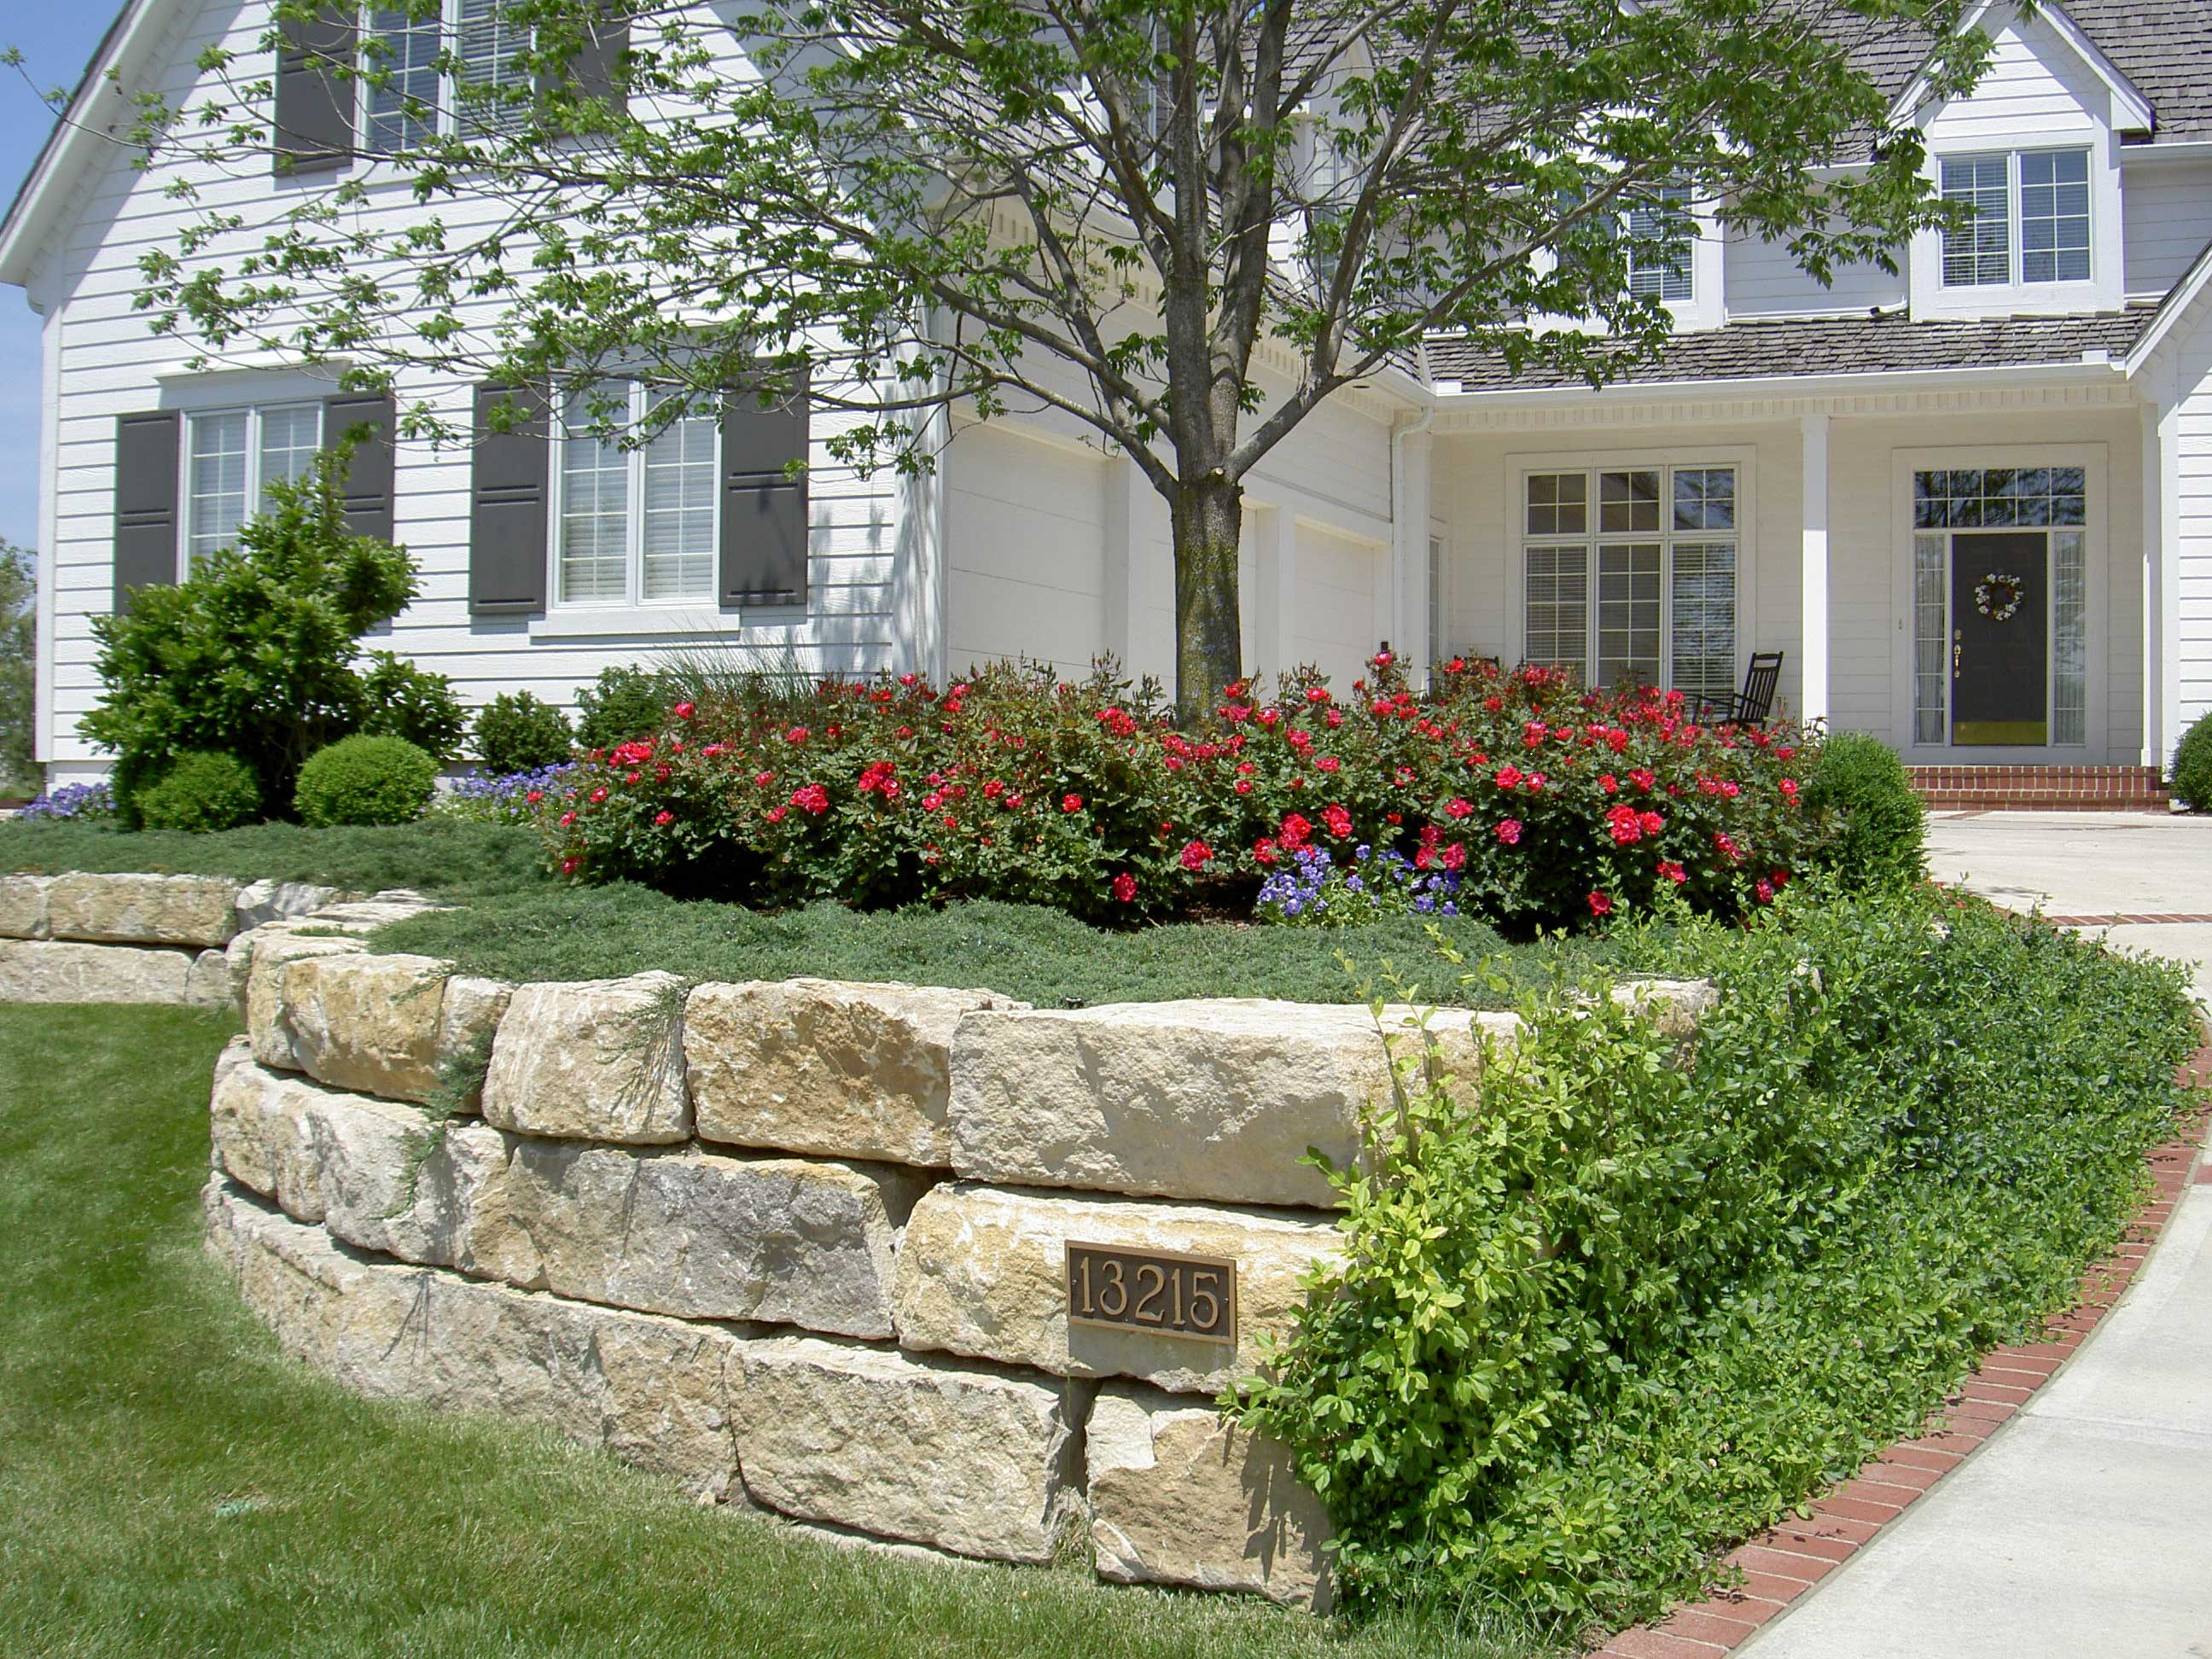 Landscape & Retaining Wall Design & Installation ... on Backyard Wall Design id=98337